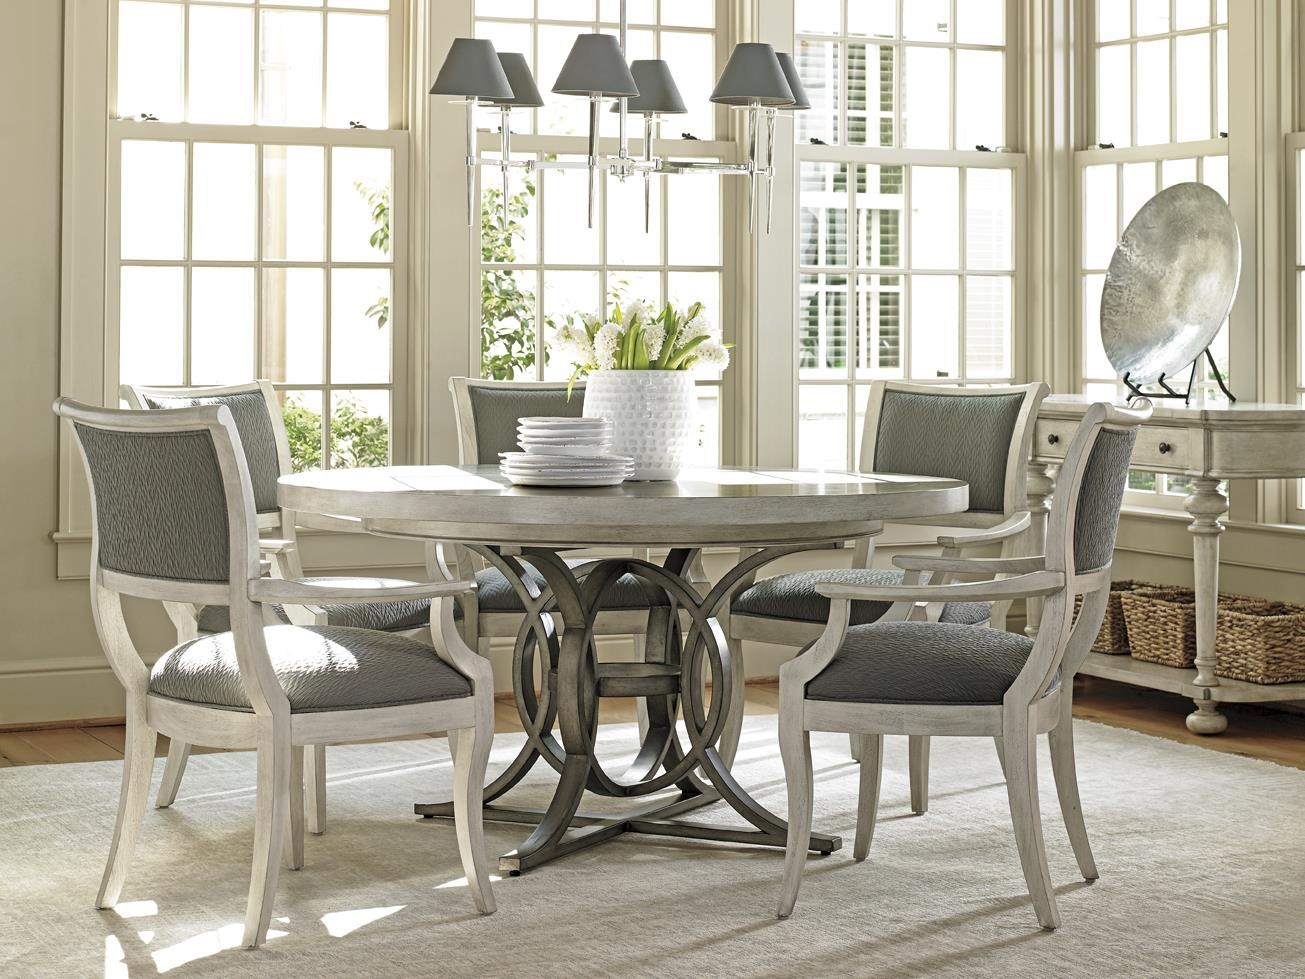 Lexington Oyster Bay Formal Dining Room Group   Belfort Furniture   Formal Dining  Room Groups